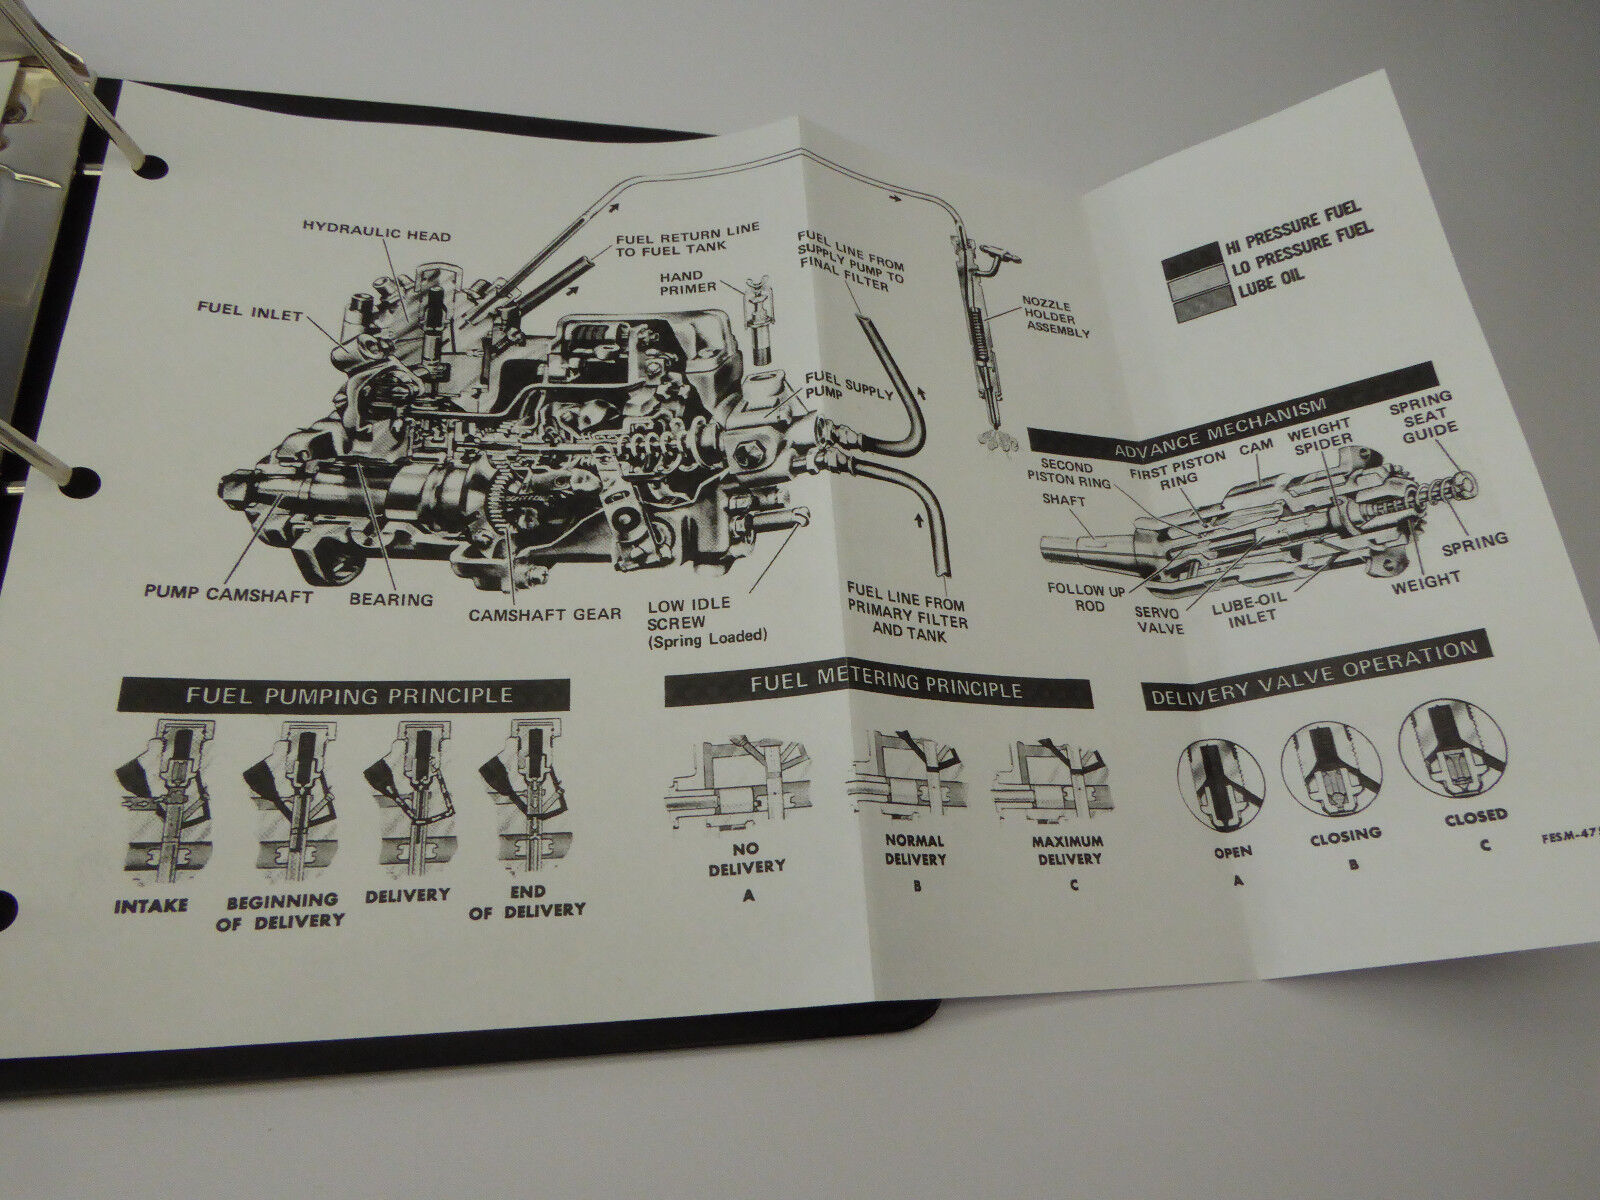 International Ih 786 886 986 1086 1486 1586 Hydro 186 Tractor Cab Wiring Diagram 9 Of See More